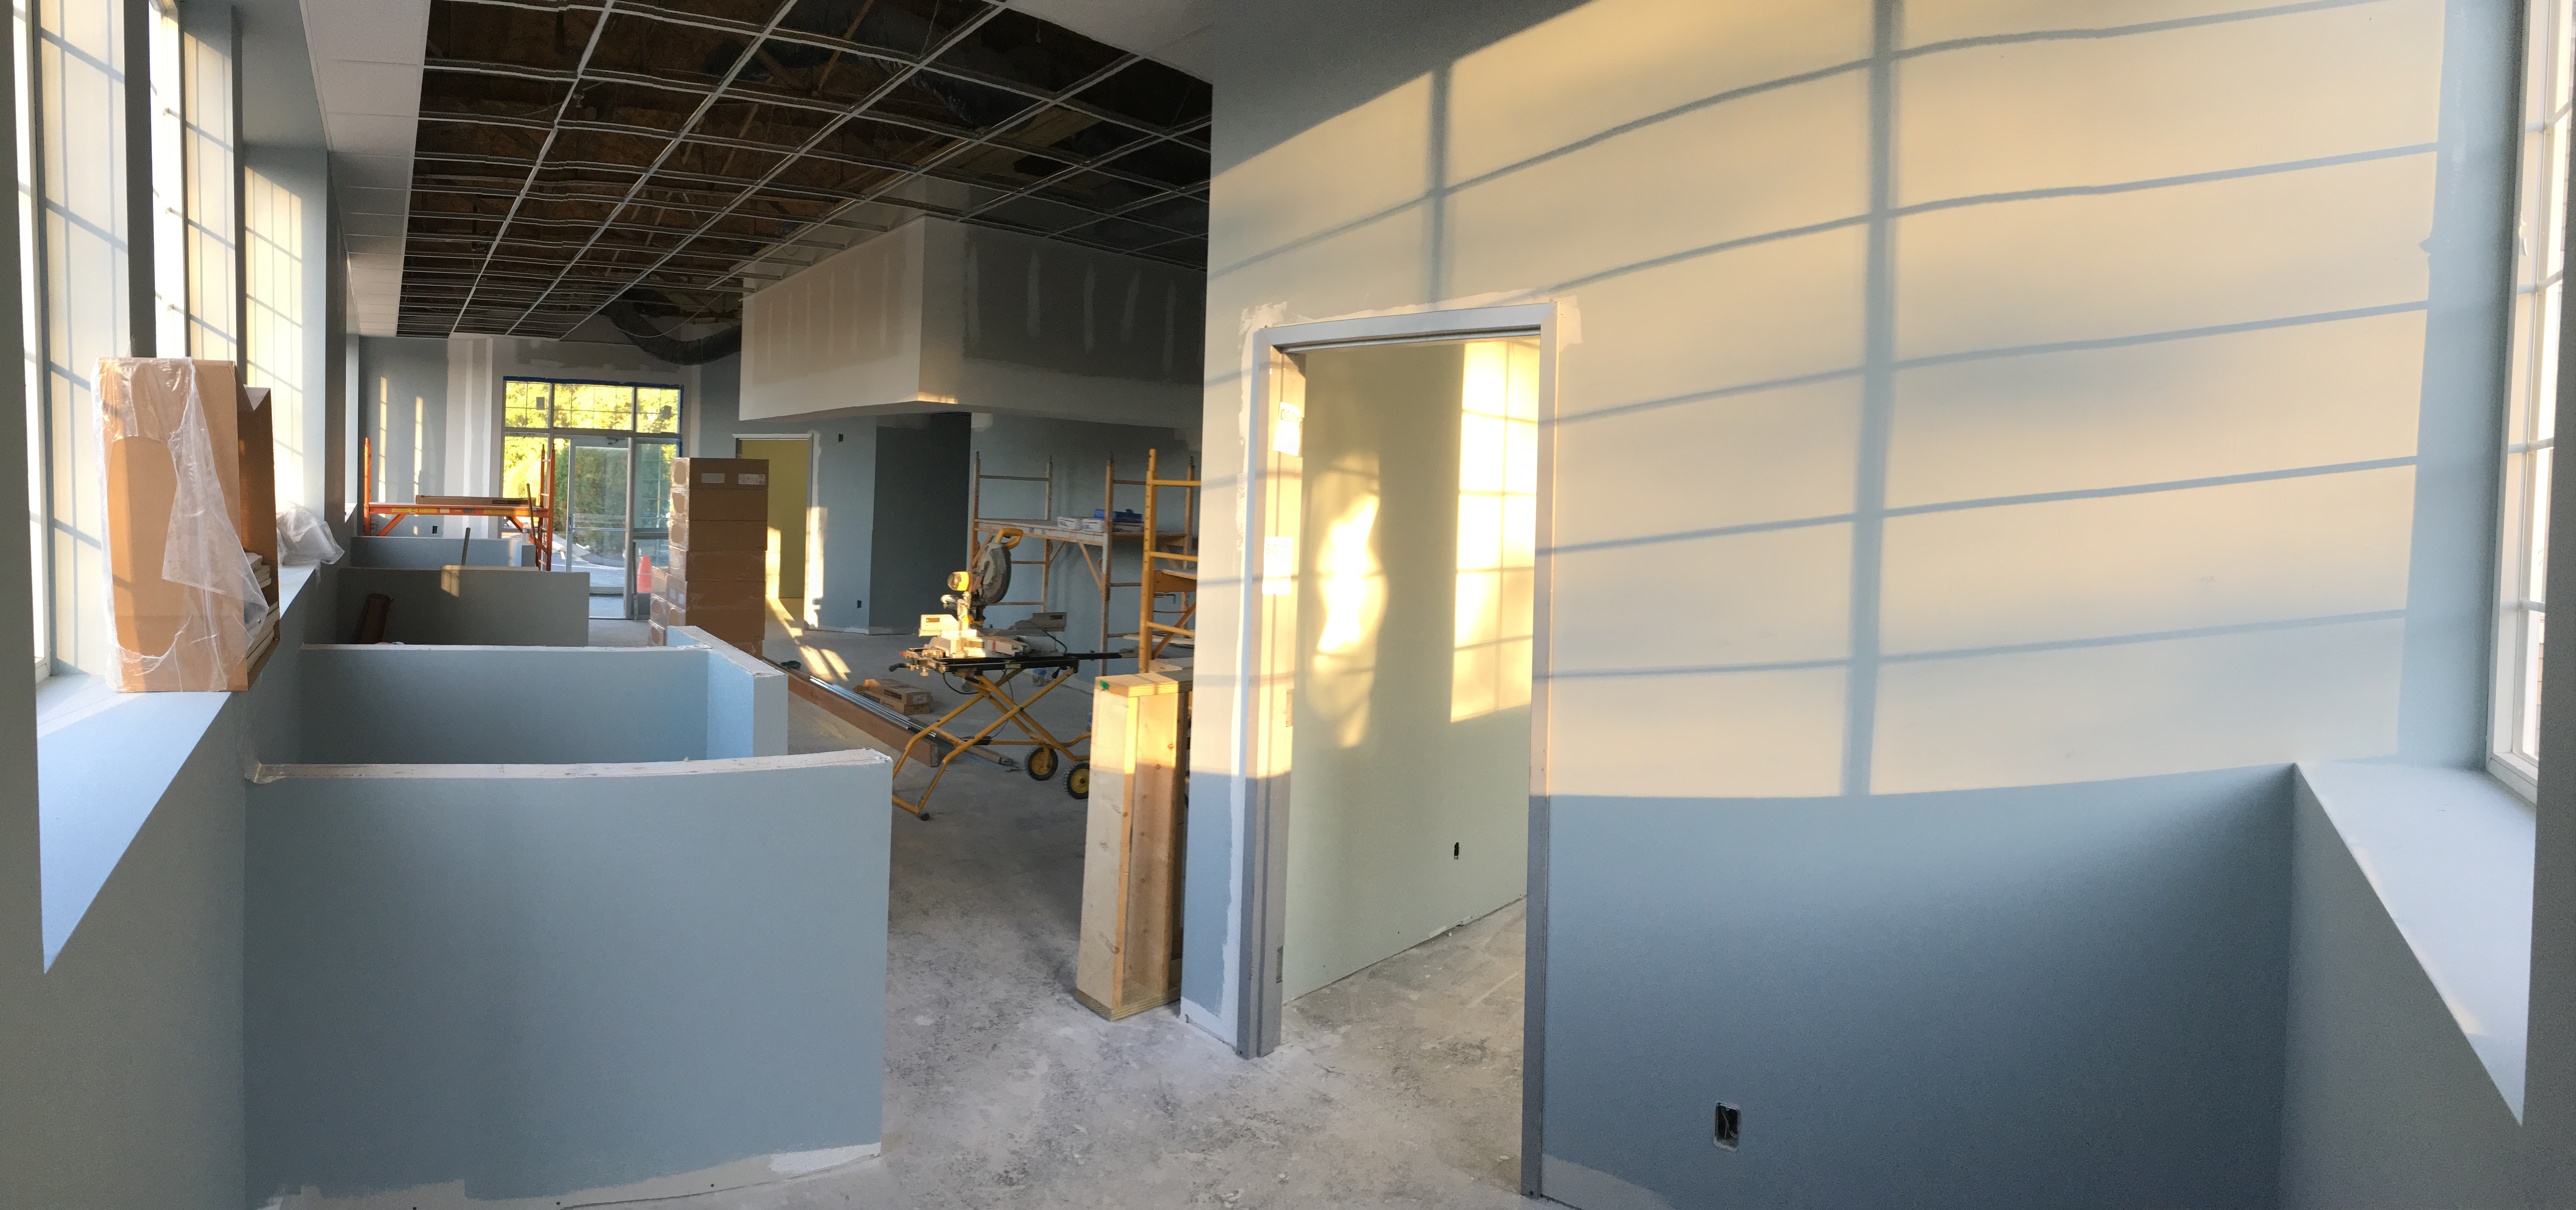 Lobby progress at PMAH in Acton MA